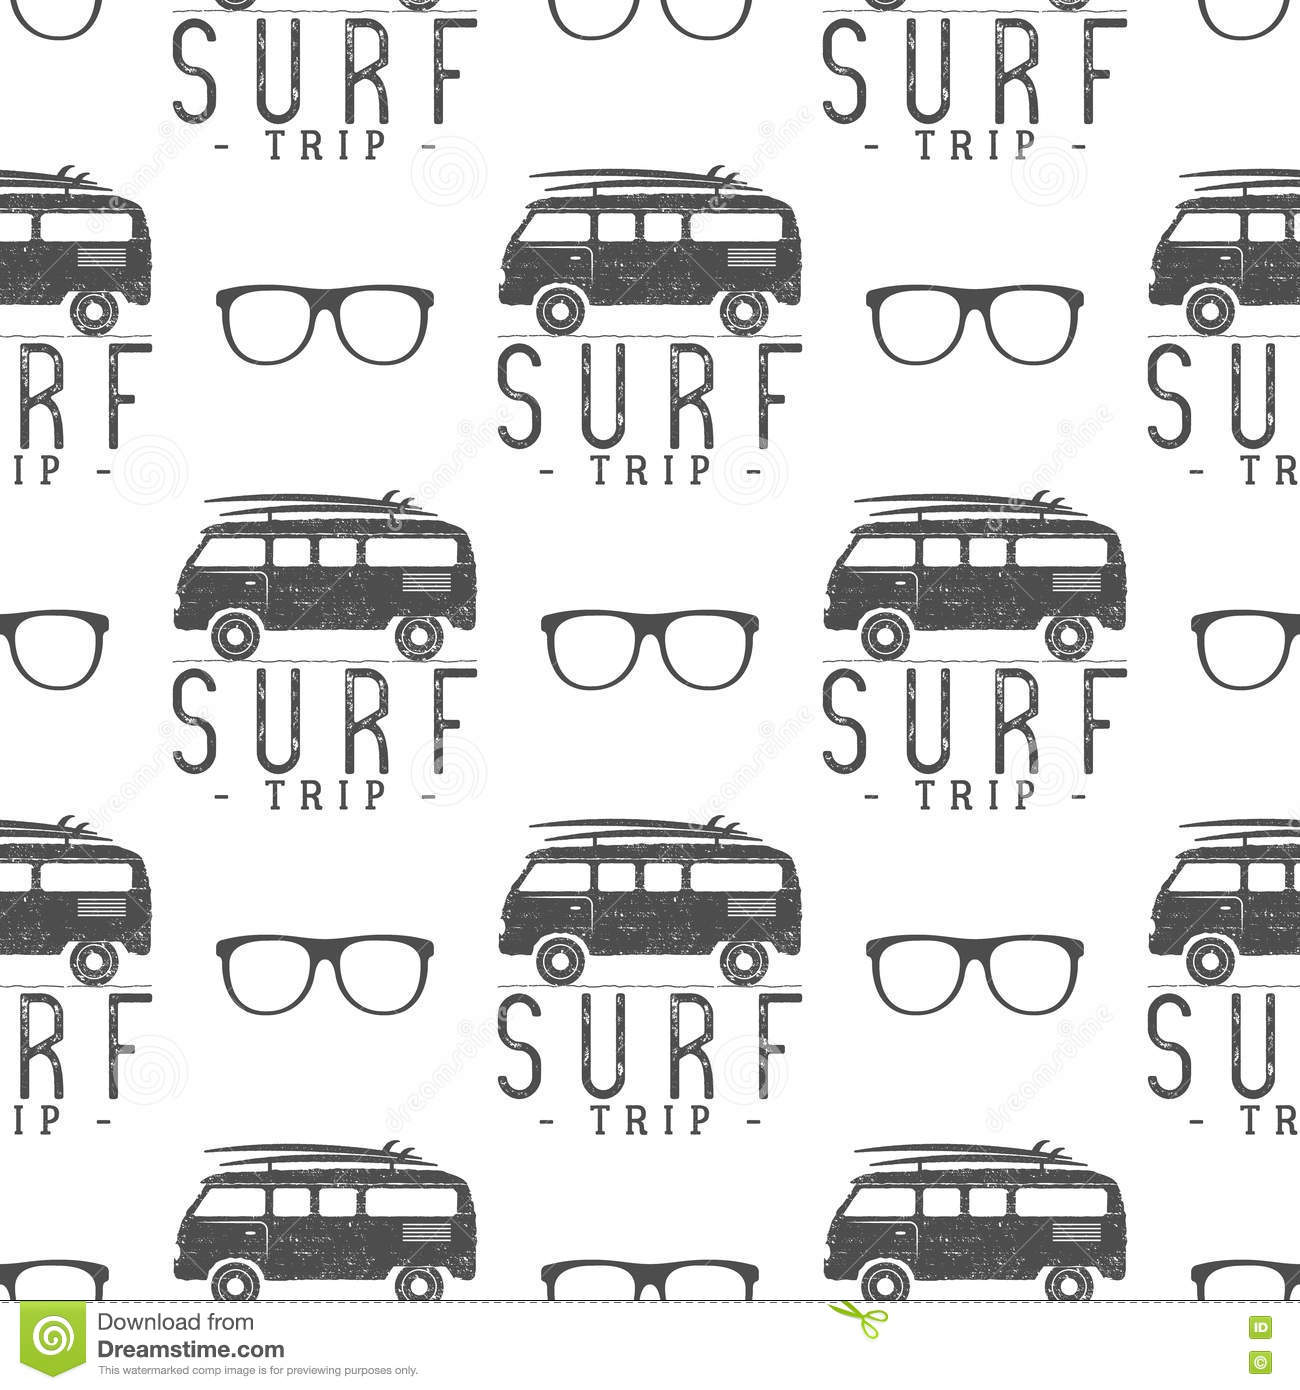 Surfing Seamless Pattern With Glass Surfer Van Glasses